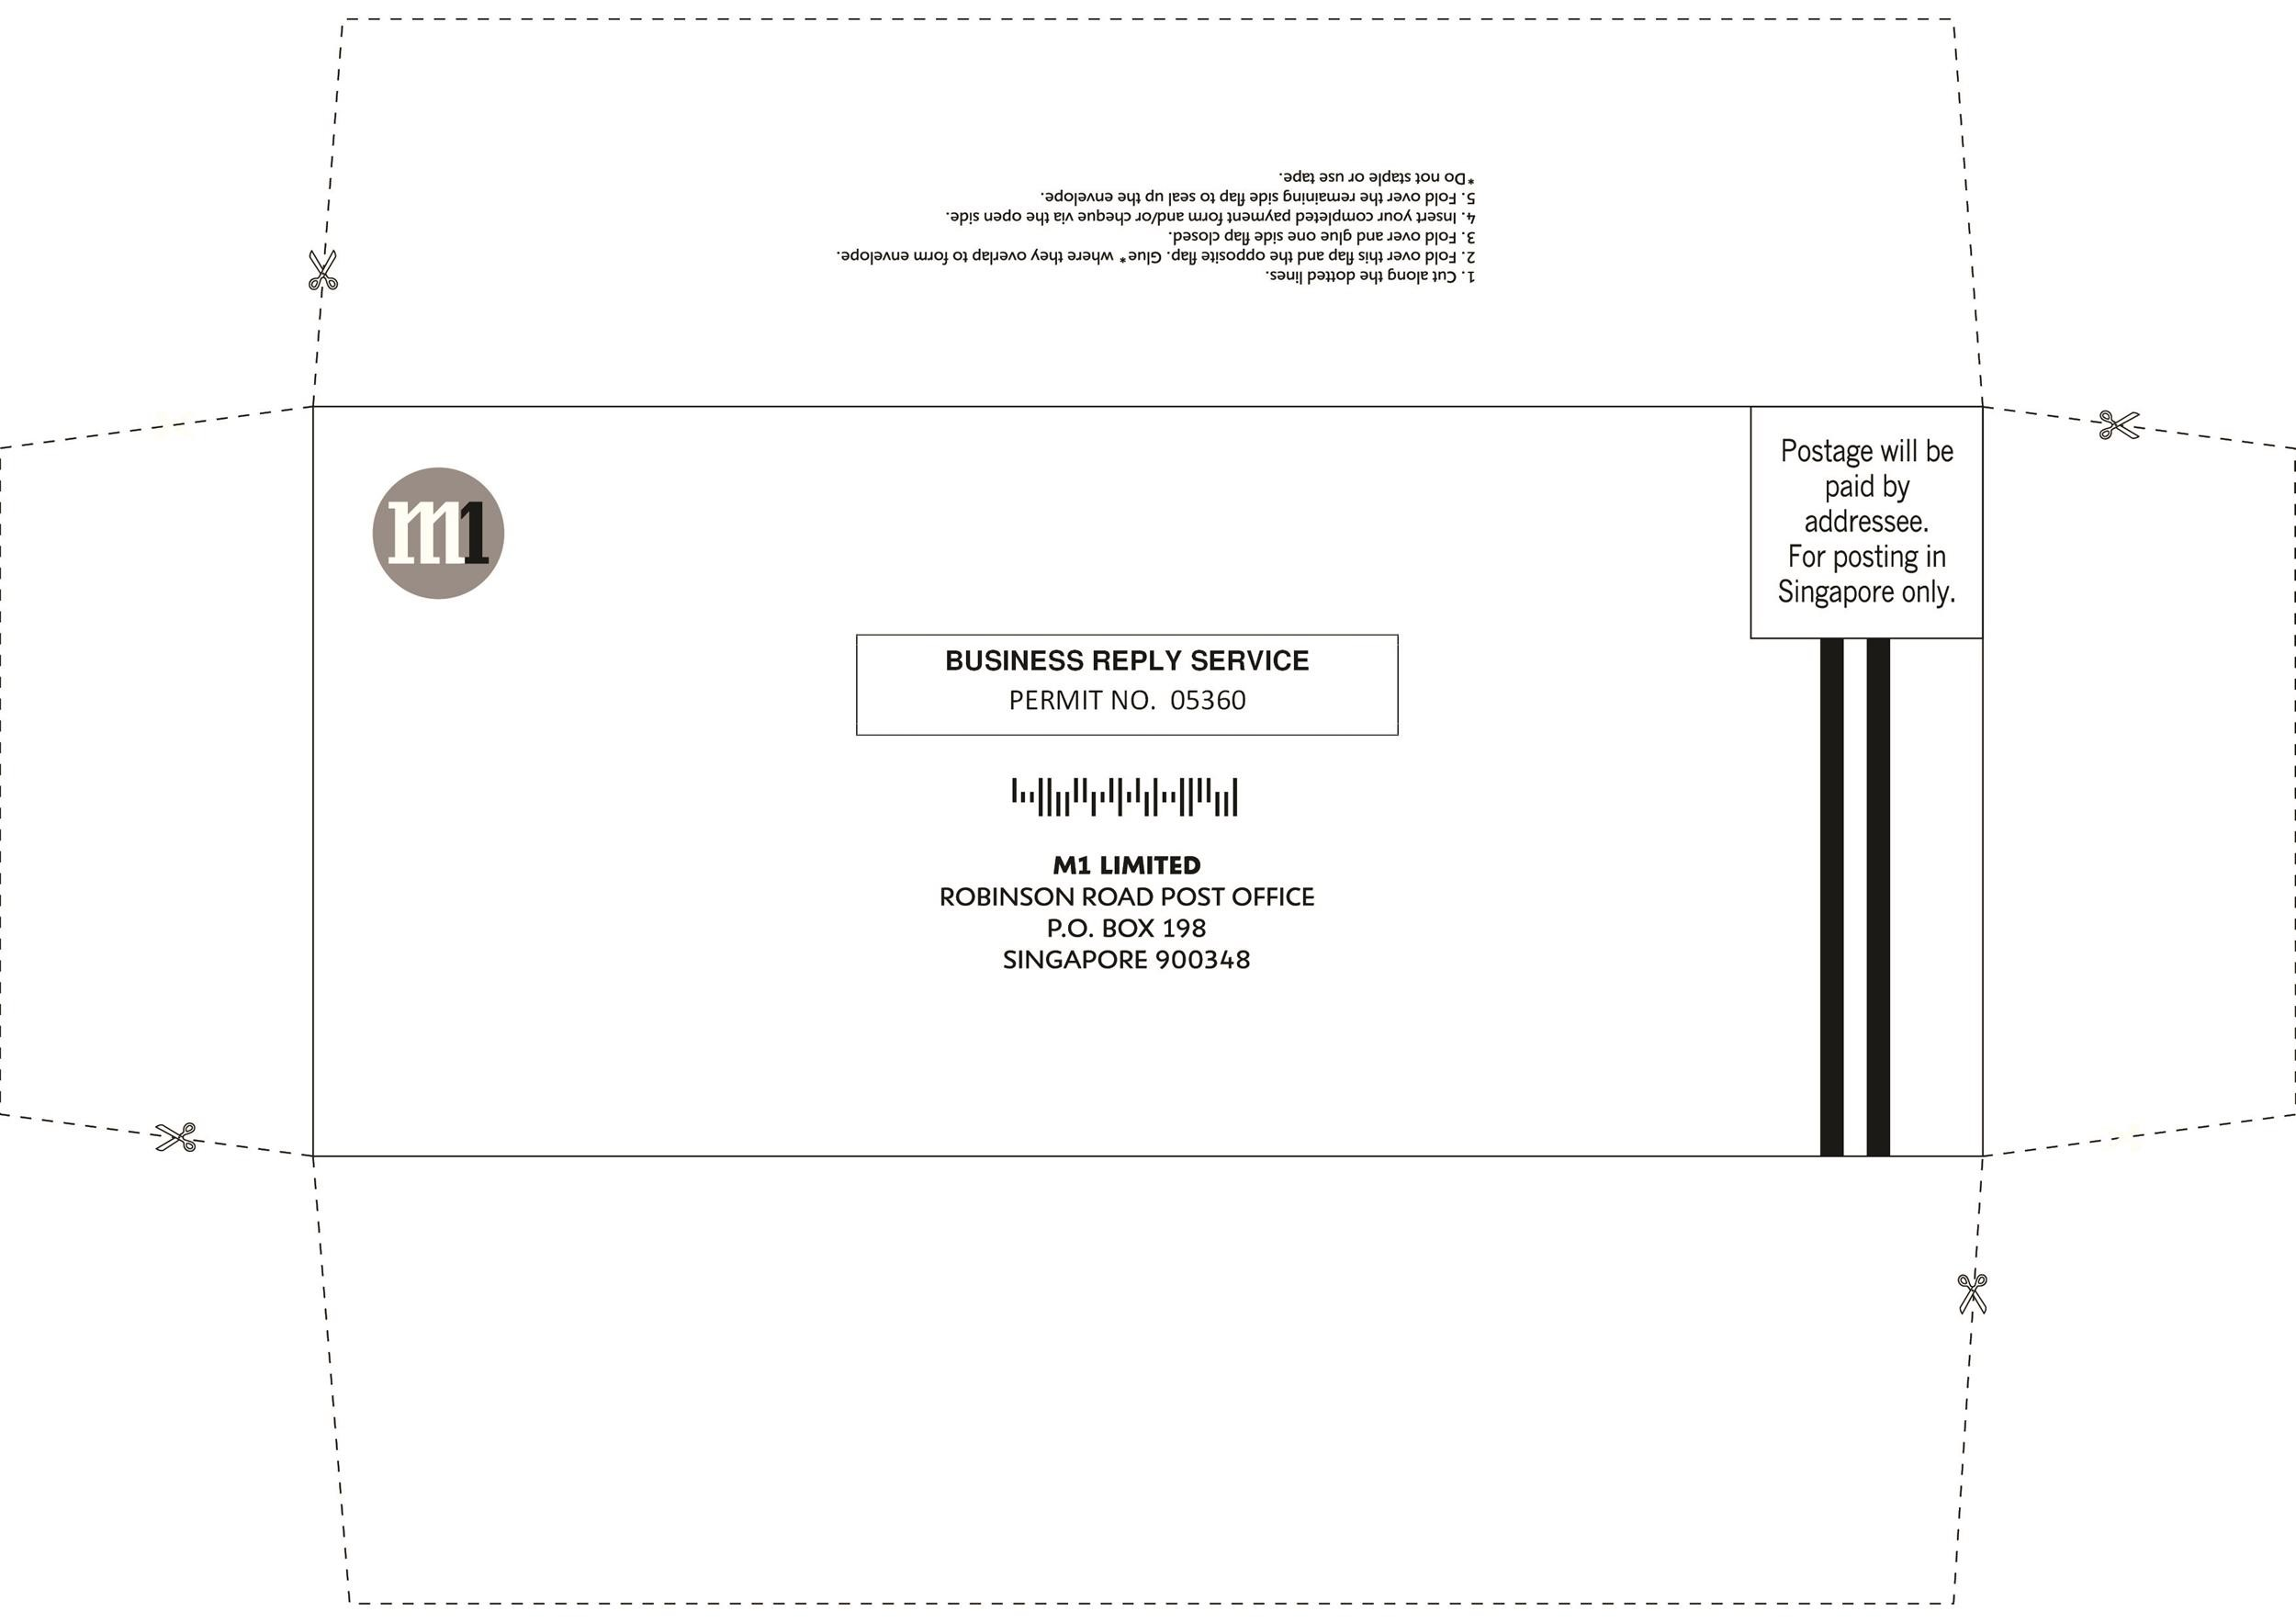 2 fill out the template download the my life greetings address template based on your addressing needs wedding social and mitzvah or holiday and all